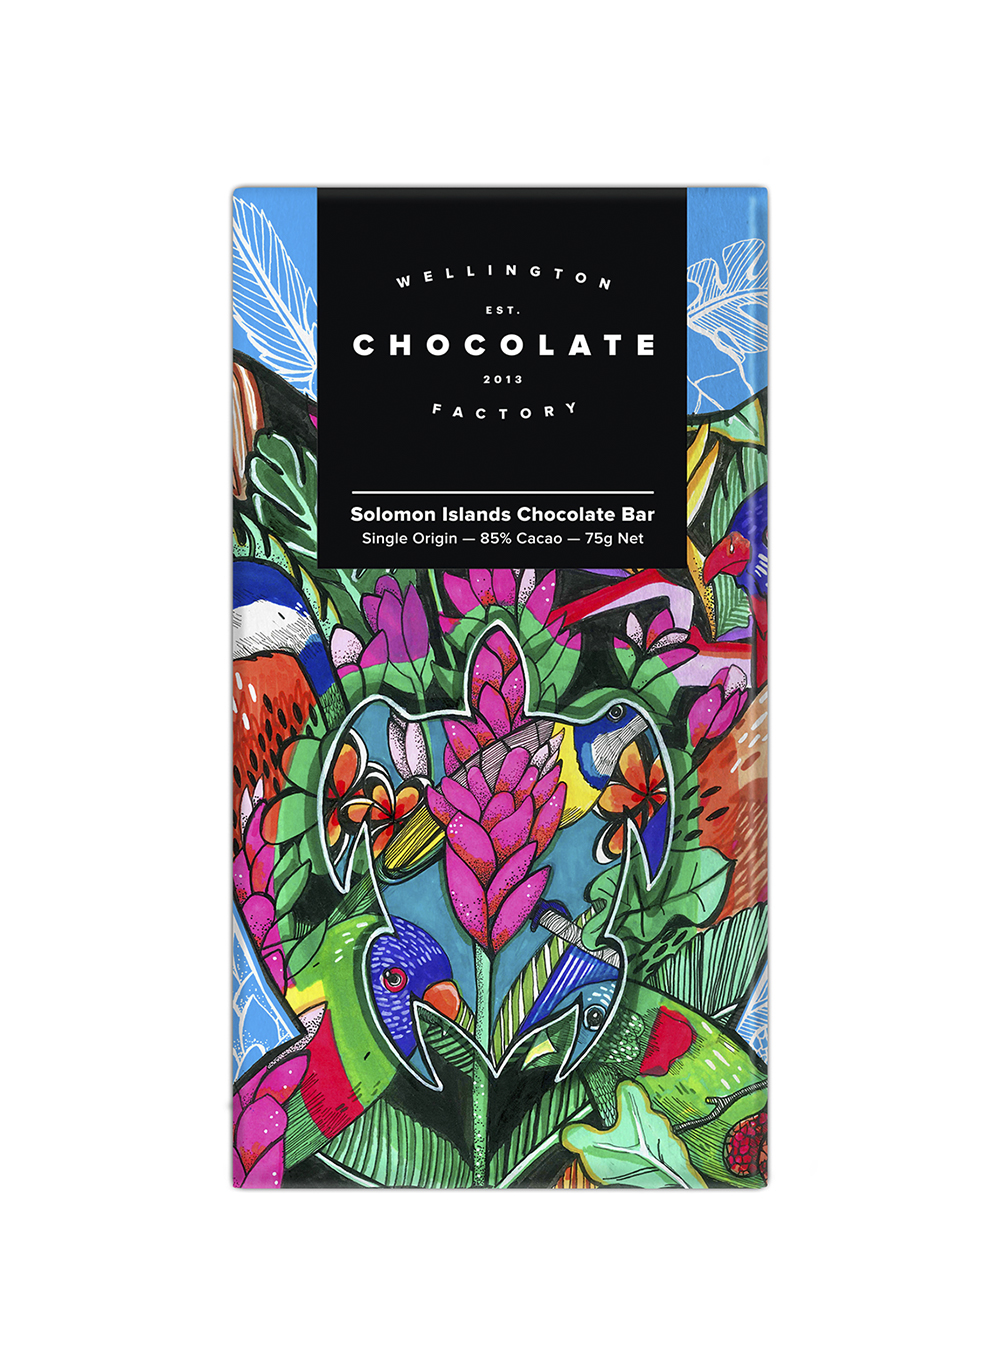 Solomon Islands Chocolate Bar - Our highest percentage cacao bar to date! Super creamy, rich and powerful. Notes of walnut, rye whiskey, and malt.